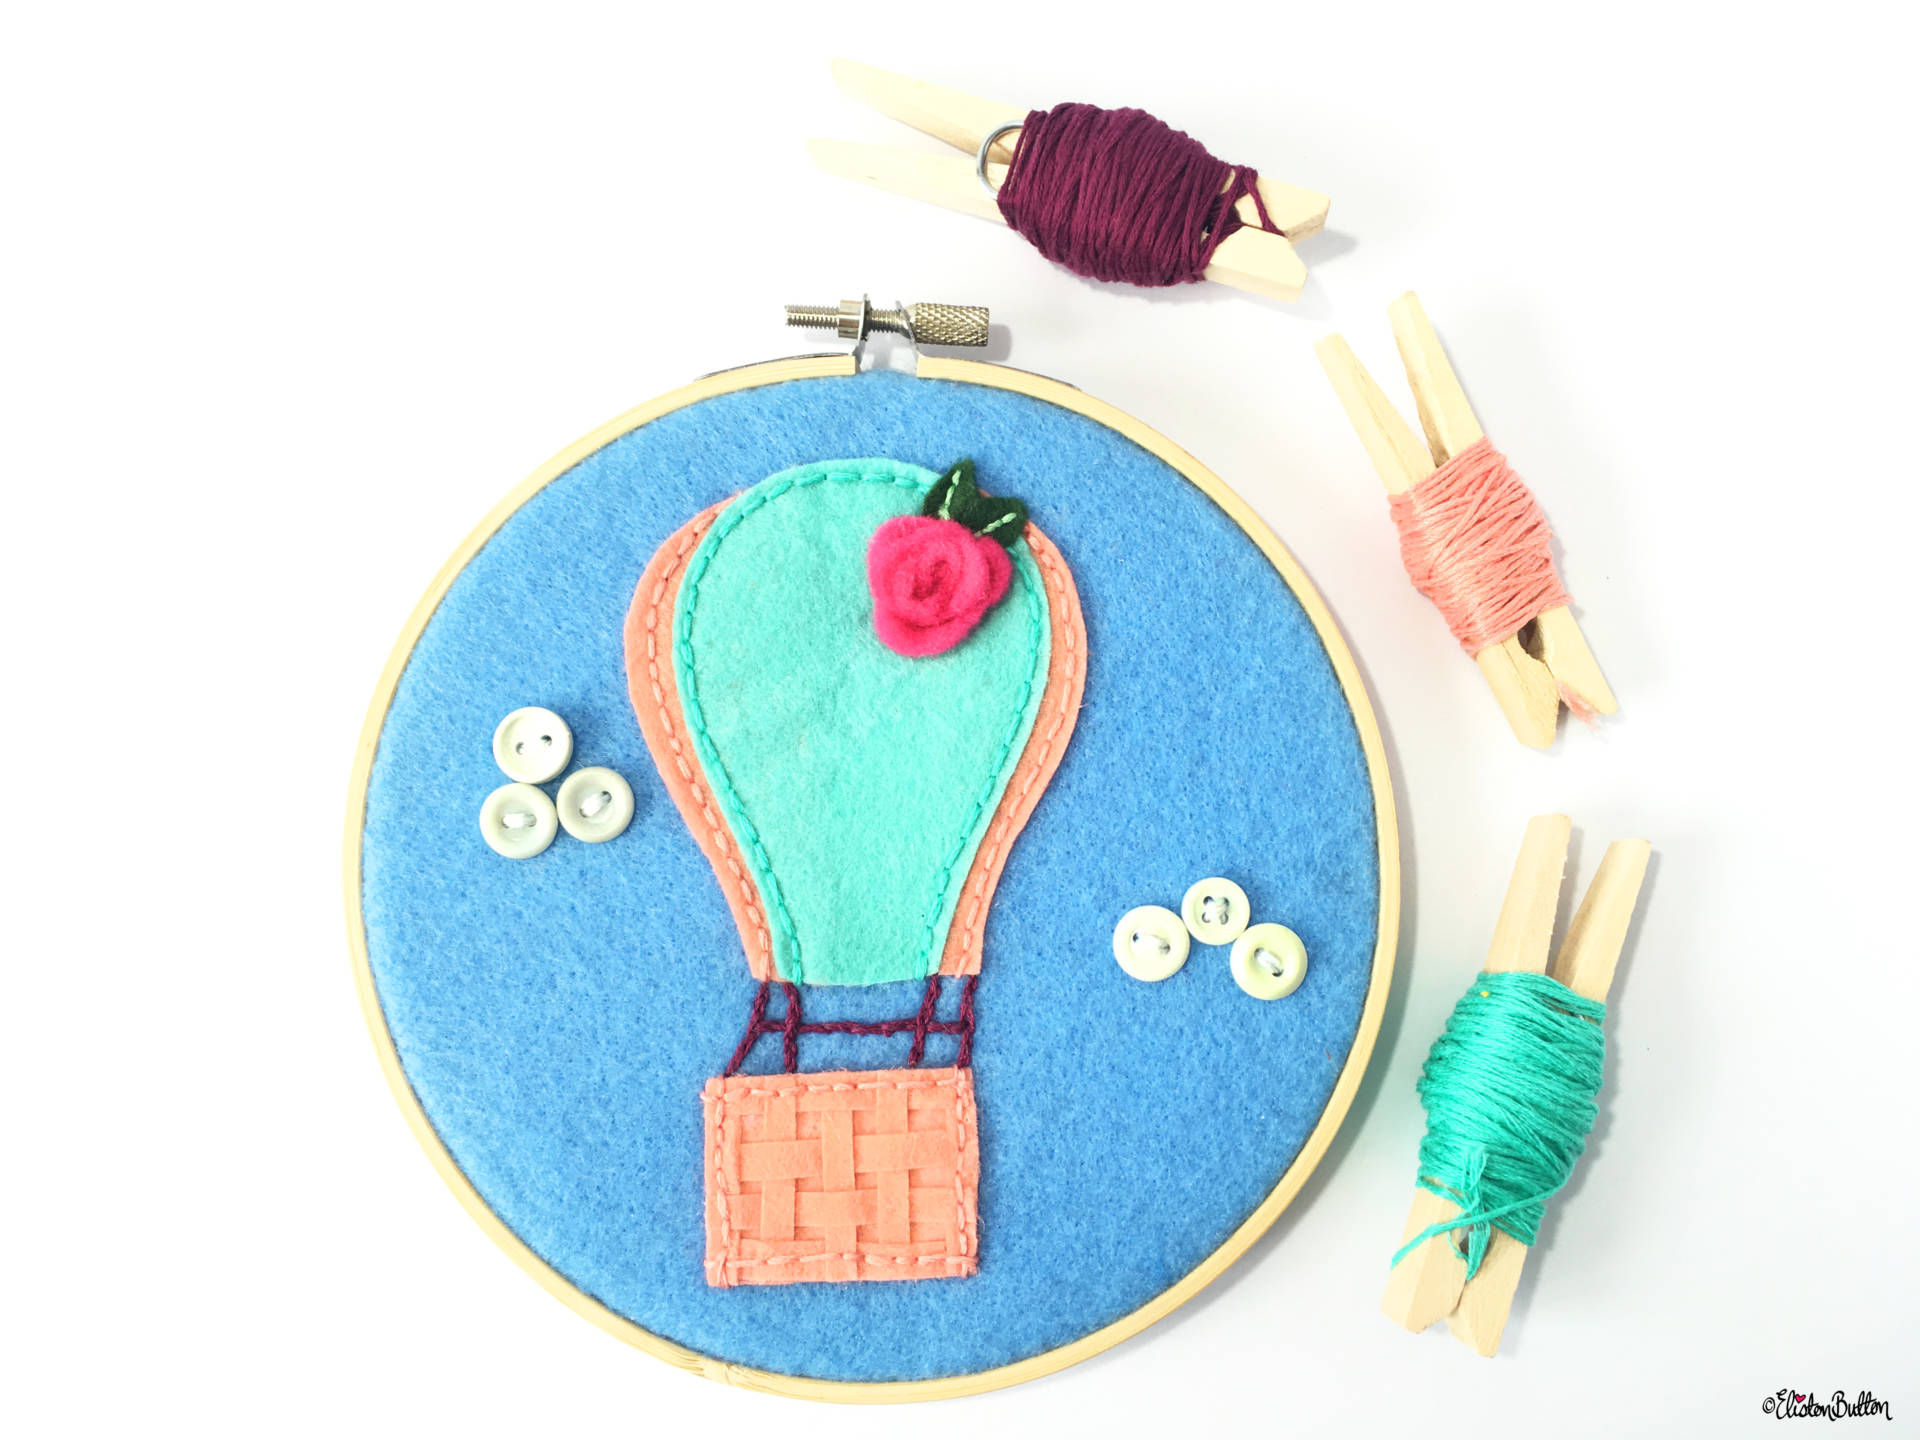 Hot Air Balloon Embroidery Hoop with Embroidery Thread Colour Palette - Create 30 - No.1 - Hot Air Balloon Embroidery Hoop - Eliston Button A-Z of Craft at www.elistonbutton.com - Eliston Button - That Crafty Kid – Art, Design, Craft & Adventure.